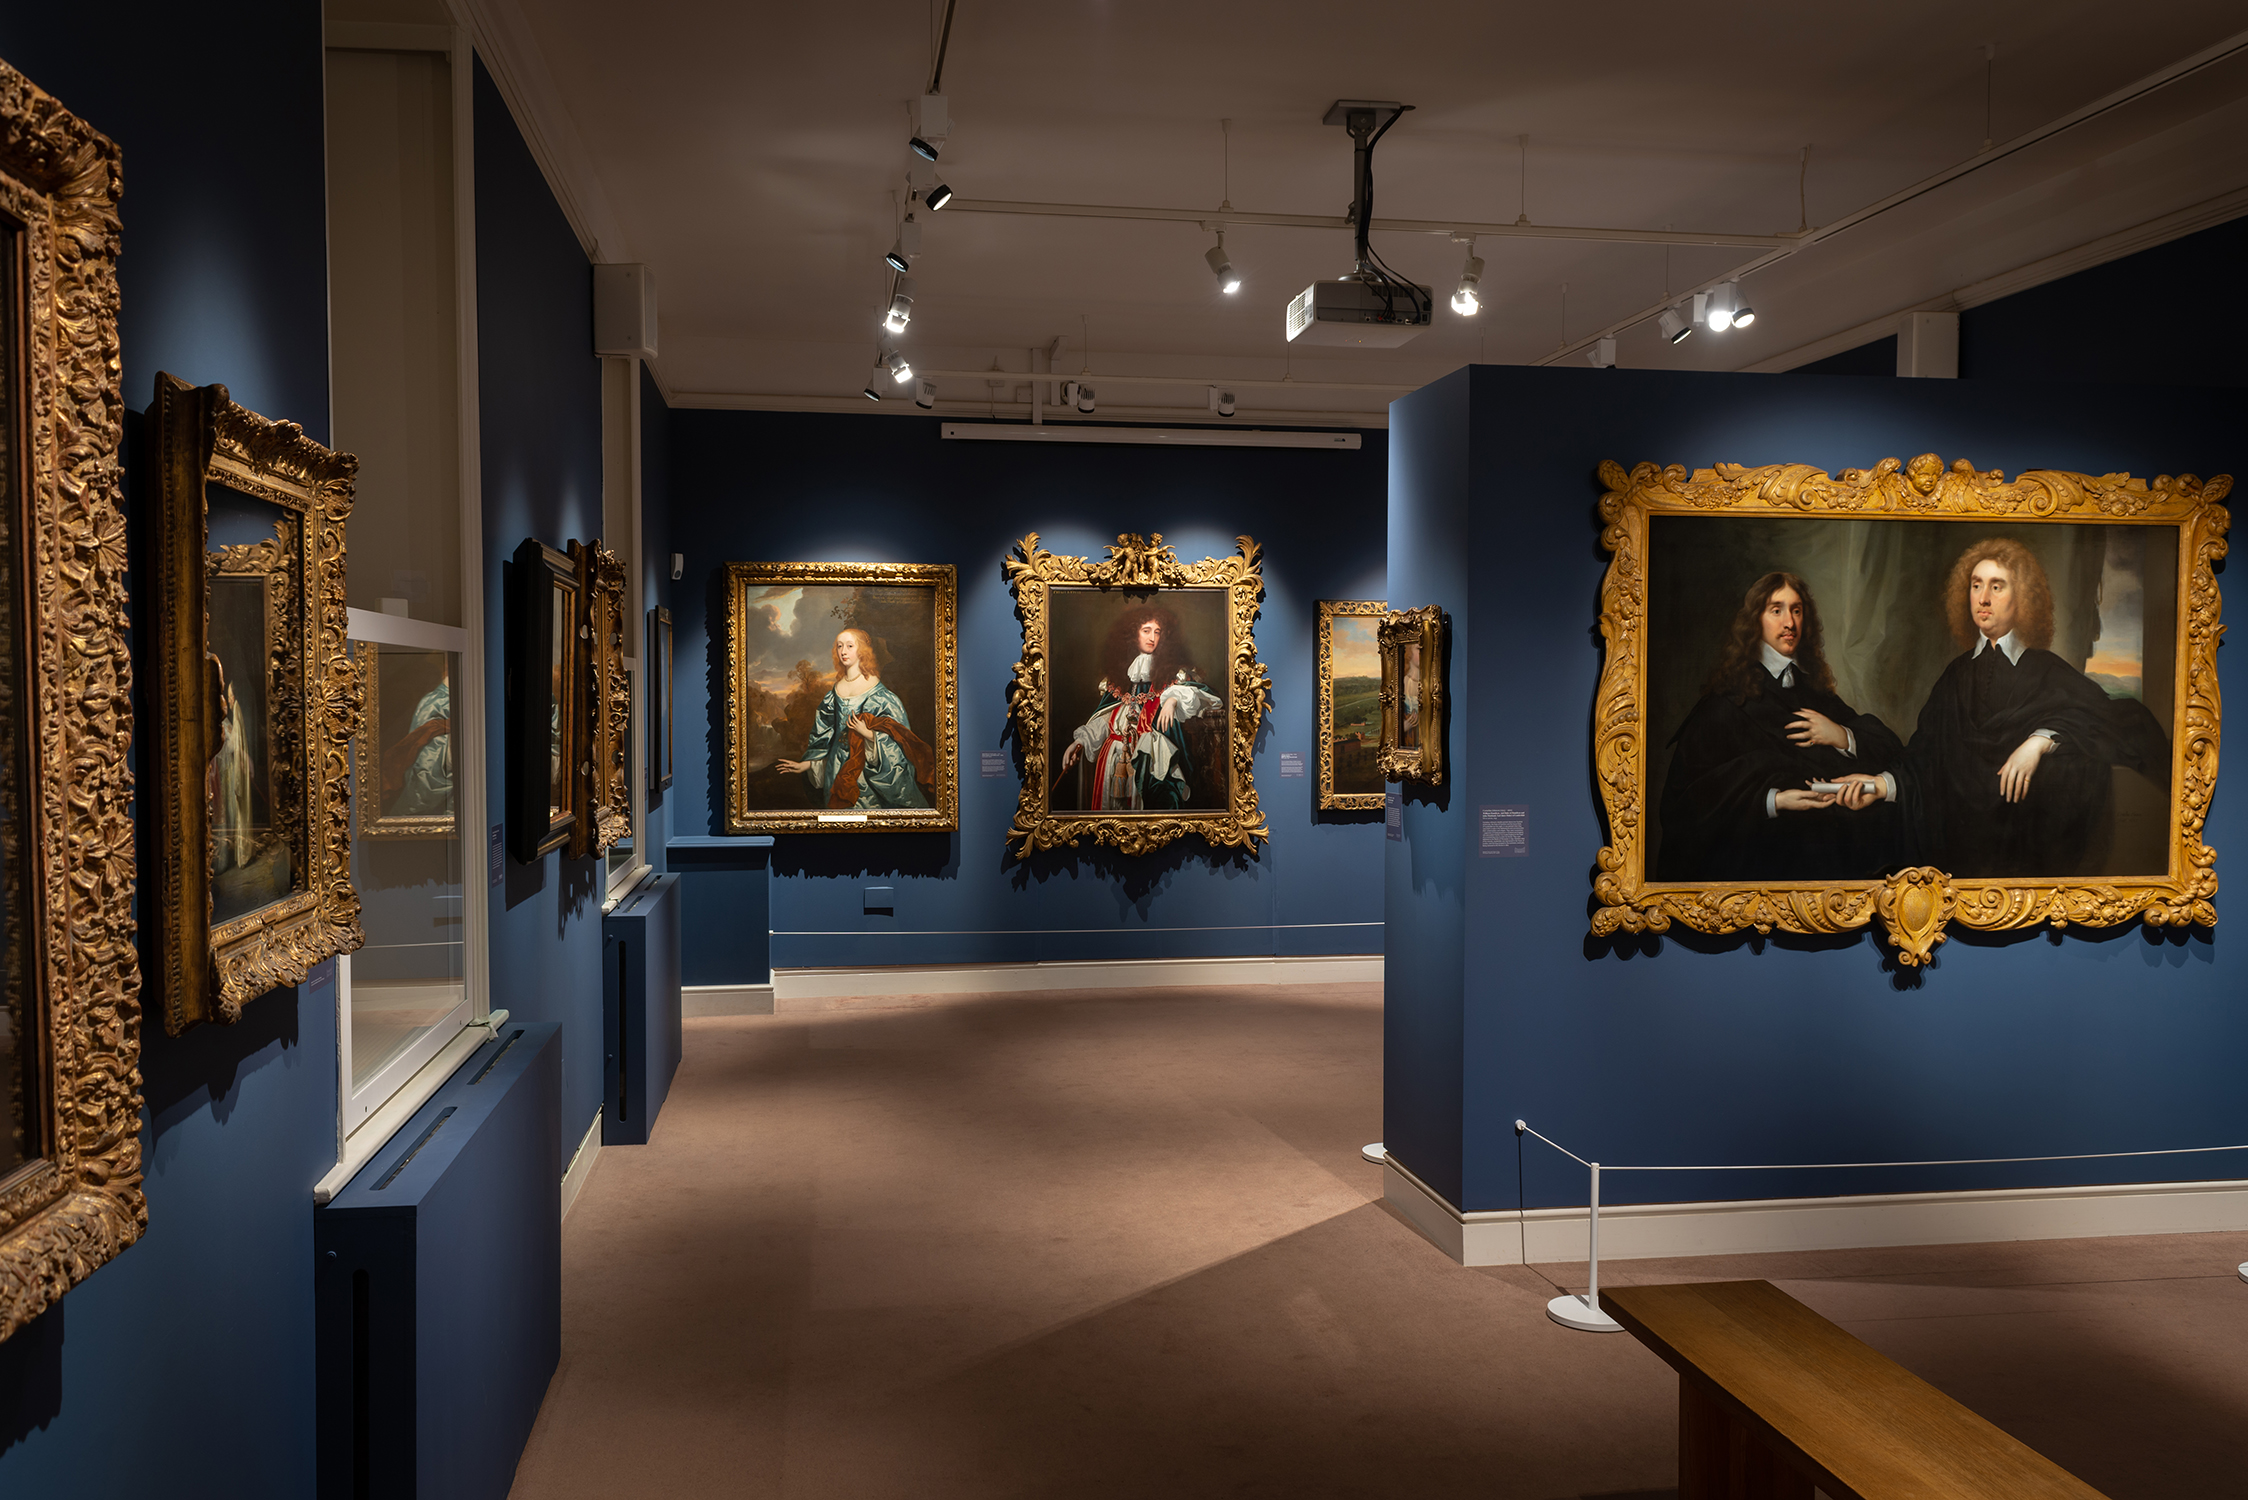 Petworth House Dutch Paintings Exhibition - I regularly cover photo assignments for the National Trust and early this year I was commissioned to photograph the Prized Possessions exhibition at Petworth House.